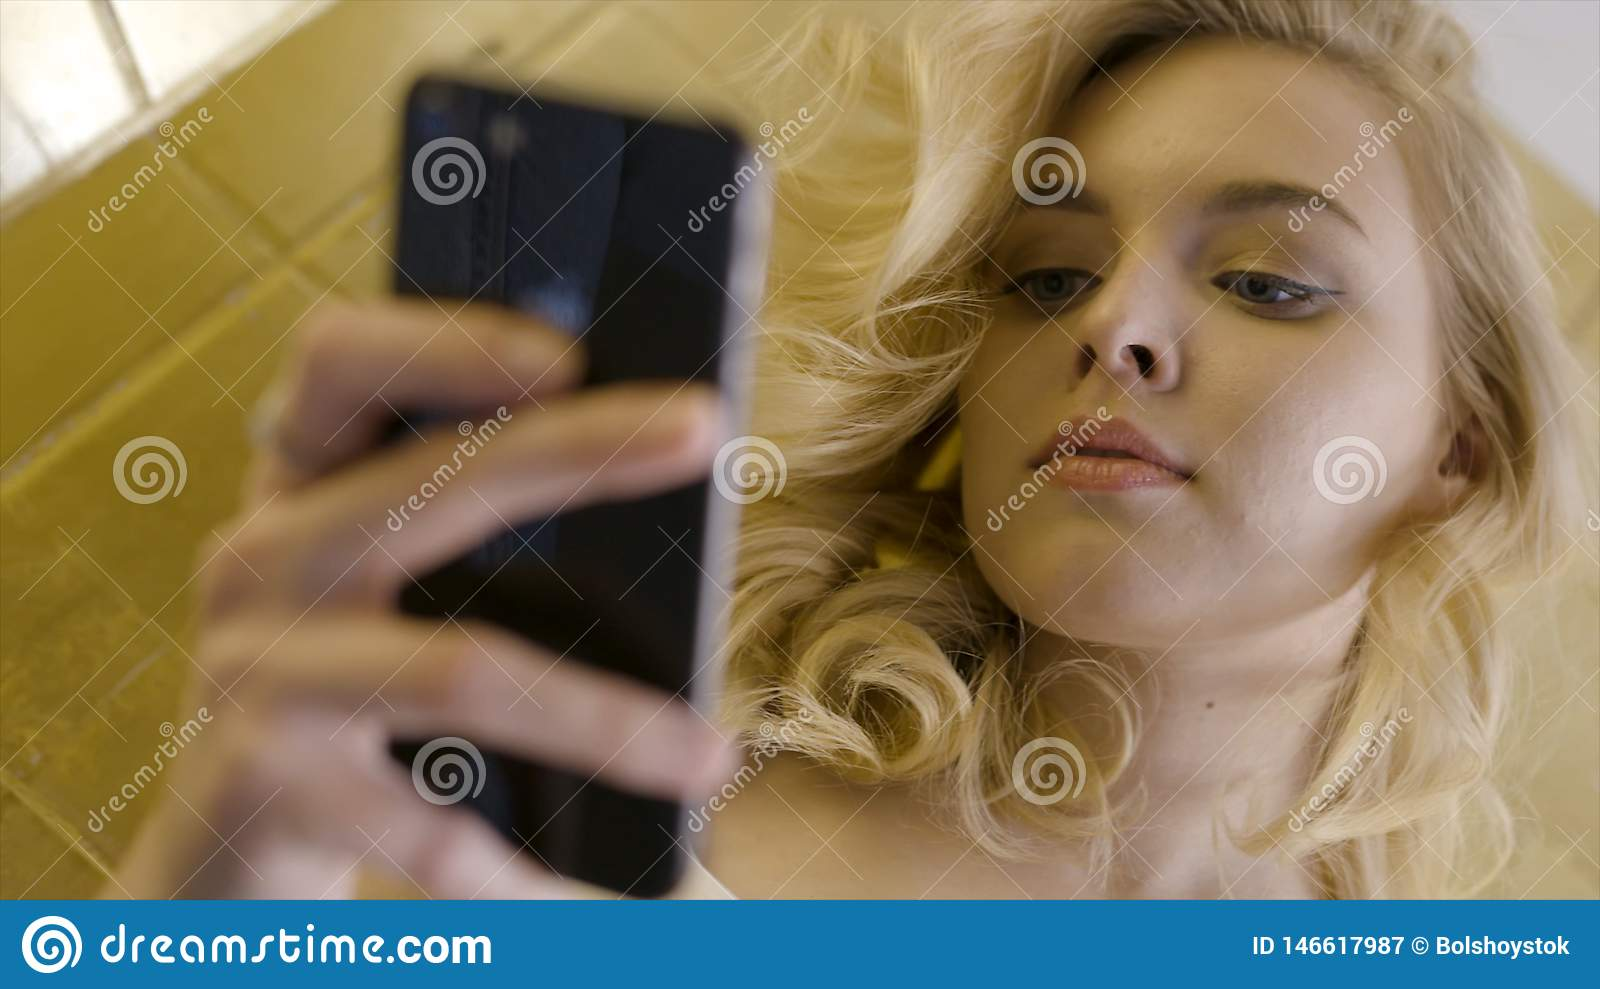 Young blonde chatting on phone. Action. Cheerful young blonde-haired female student with cute smile, using cell phone